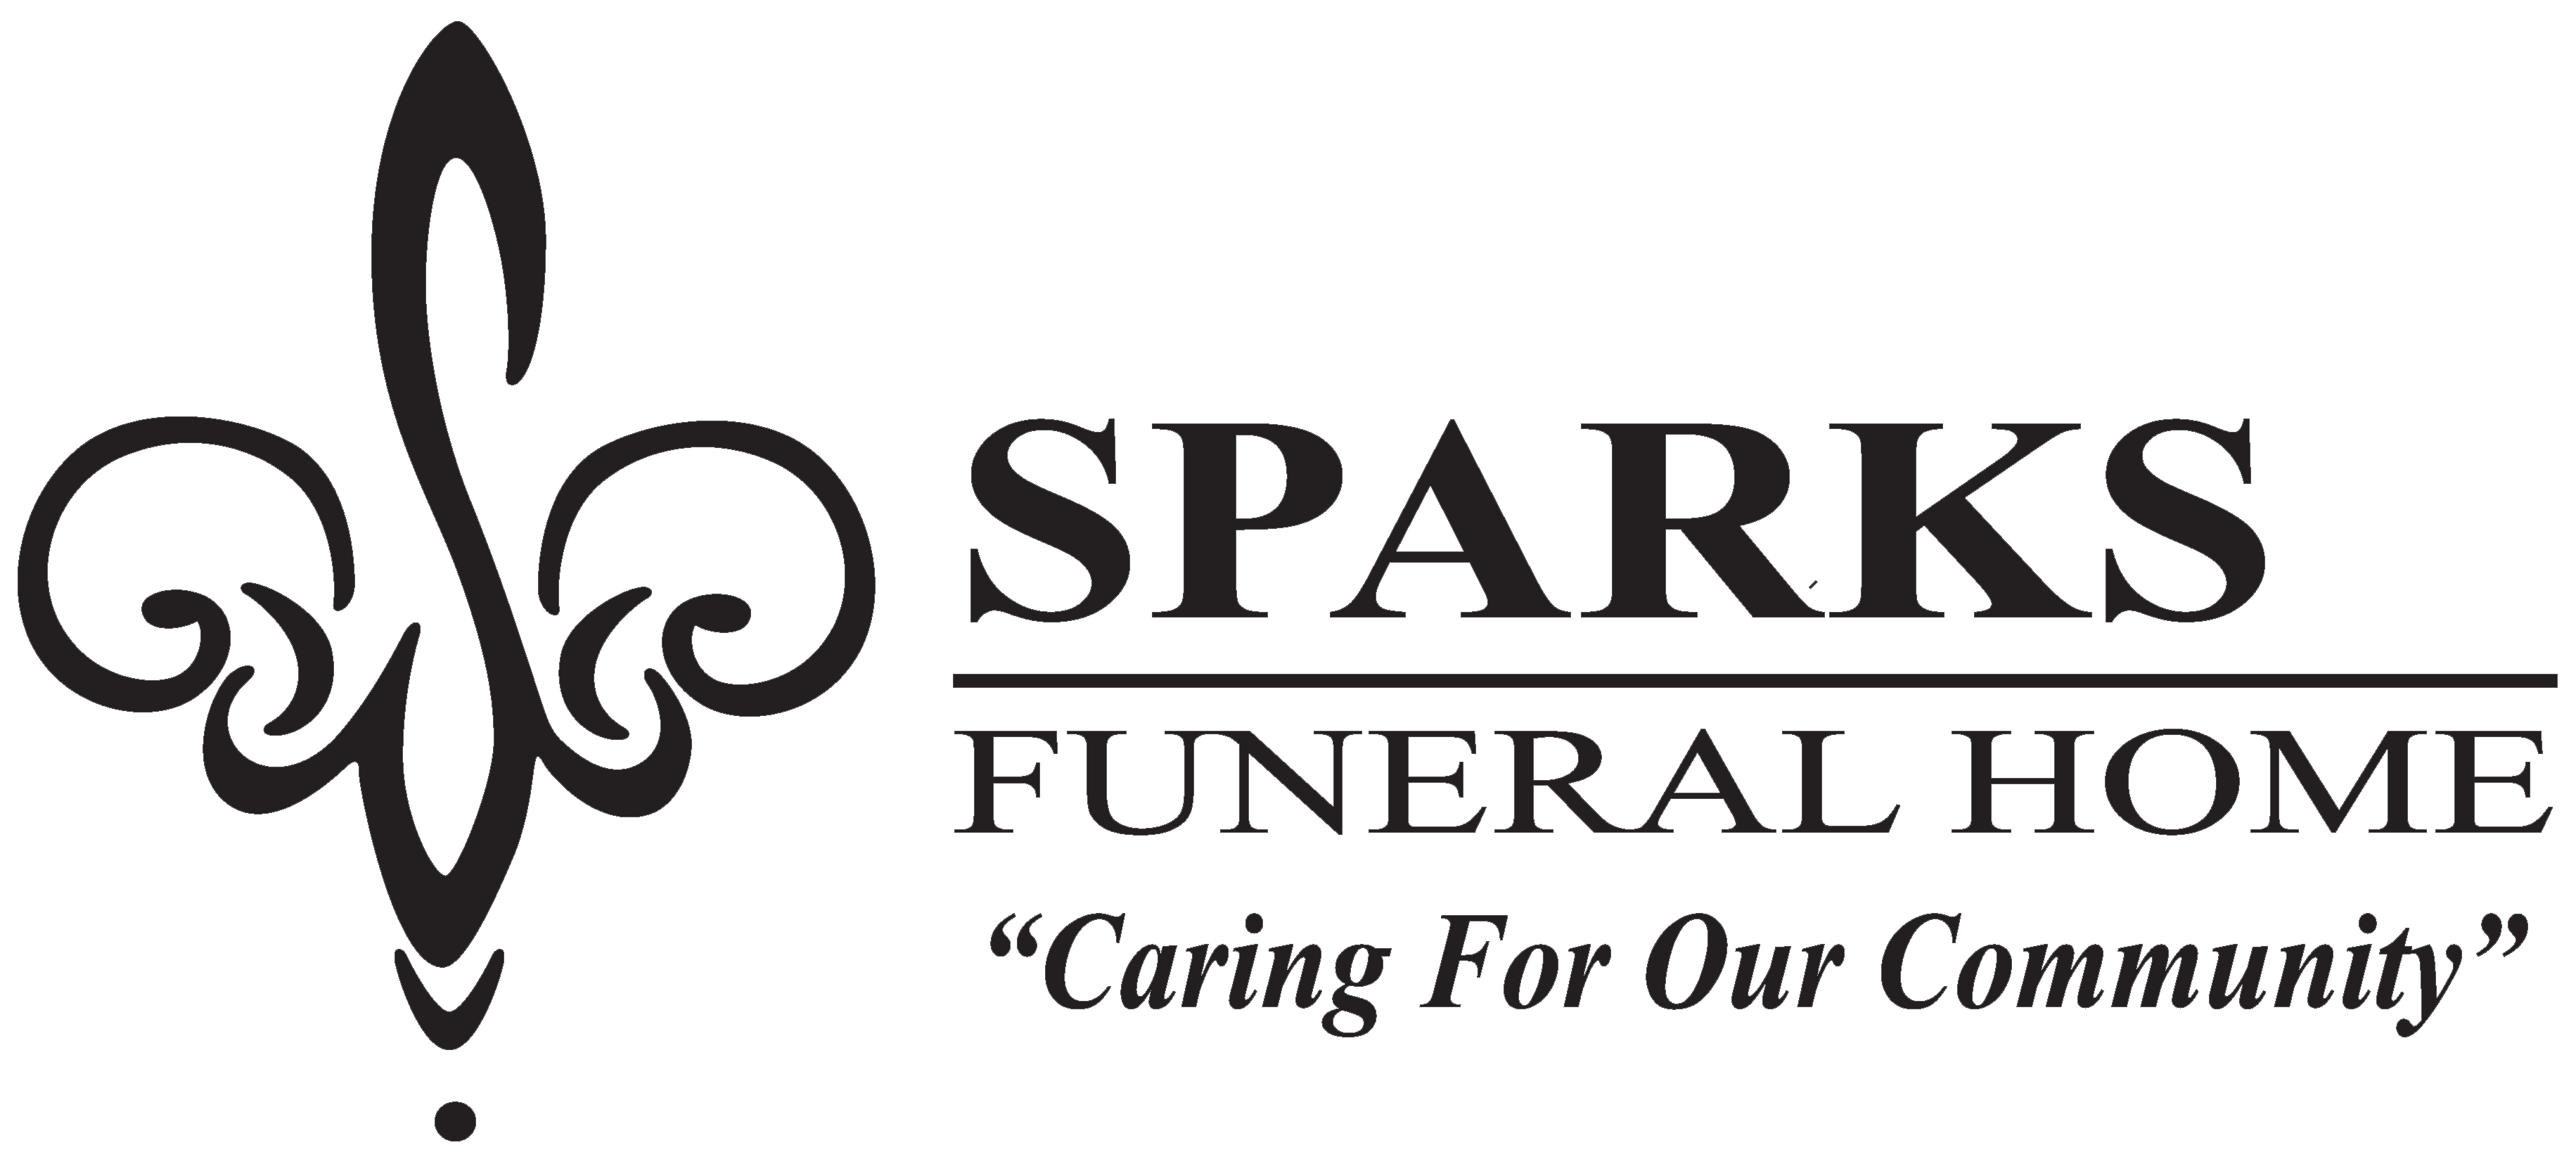 Sparks Funeral Home